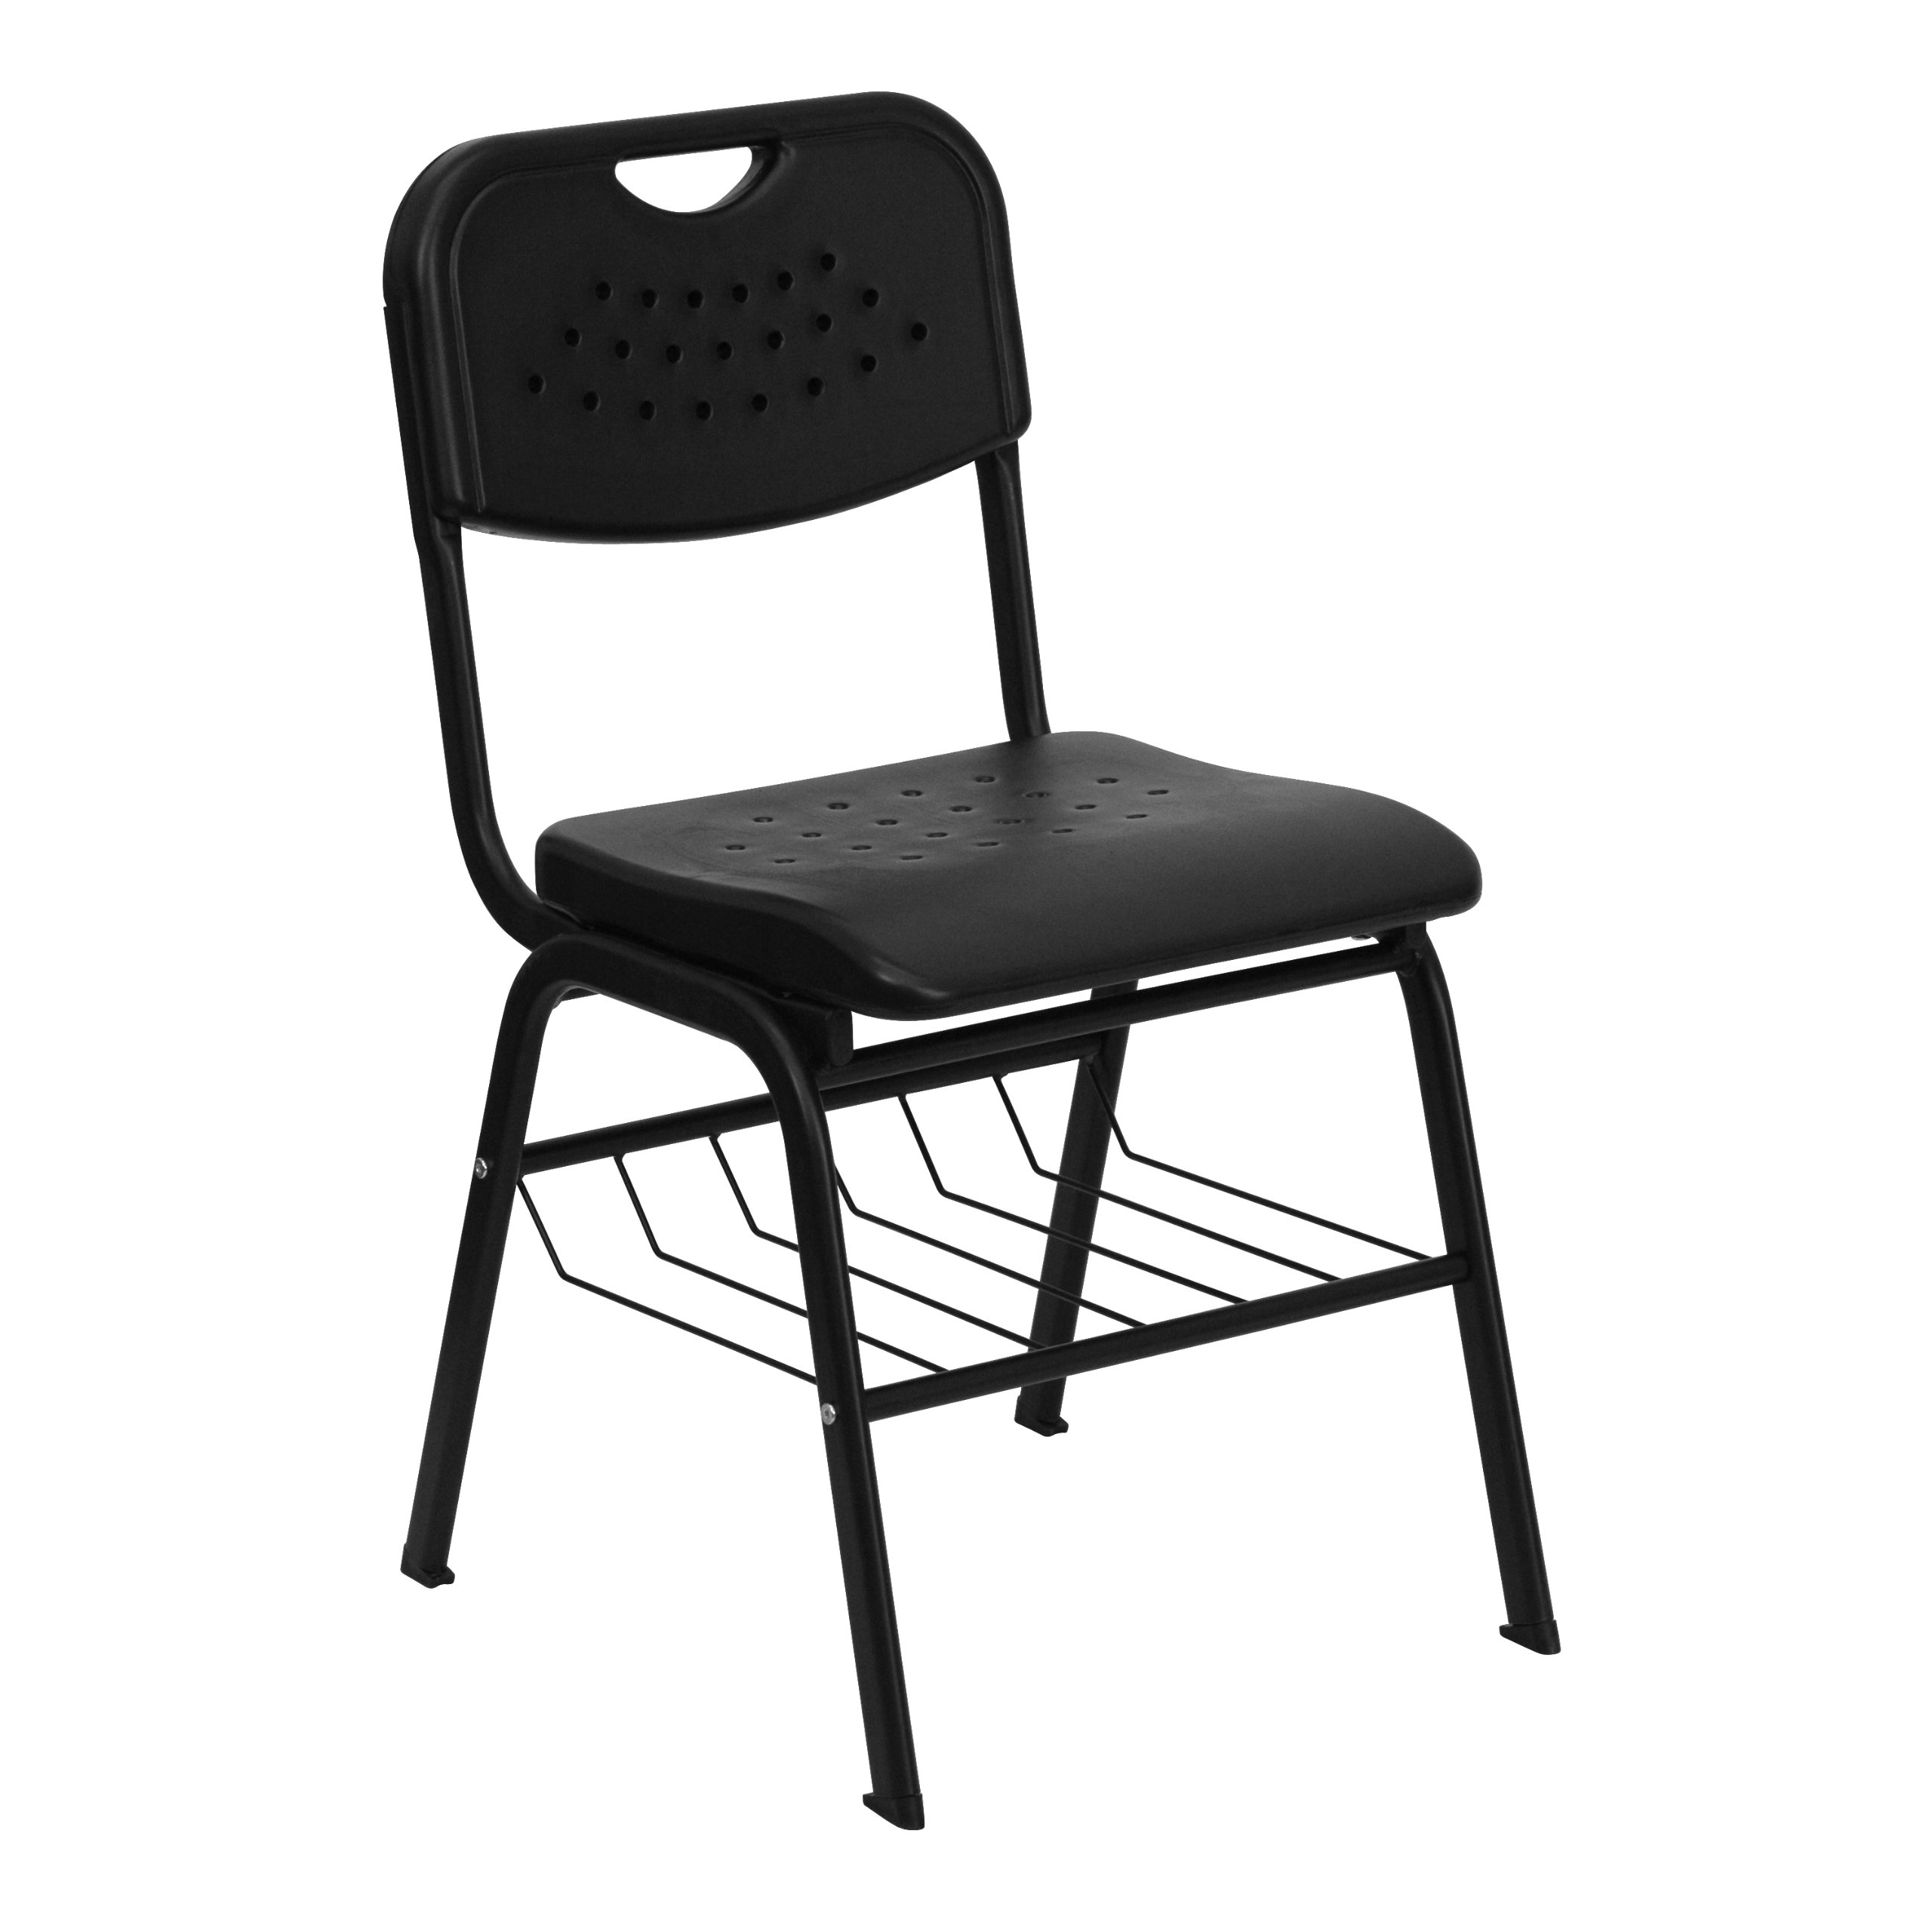 Stylizio Premium Series 880 lb. Capacity Plastic Chair with Frame and Book Basket